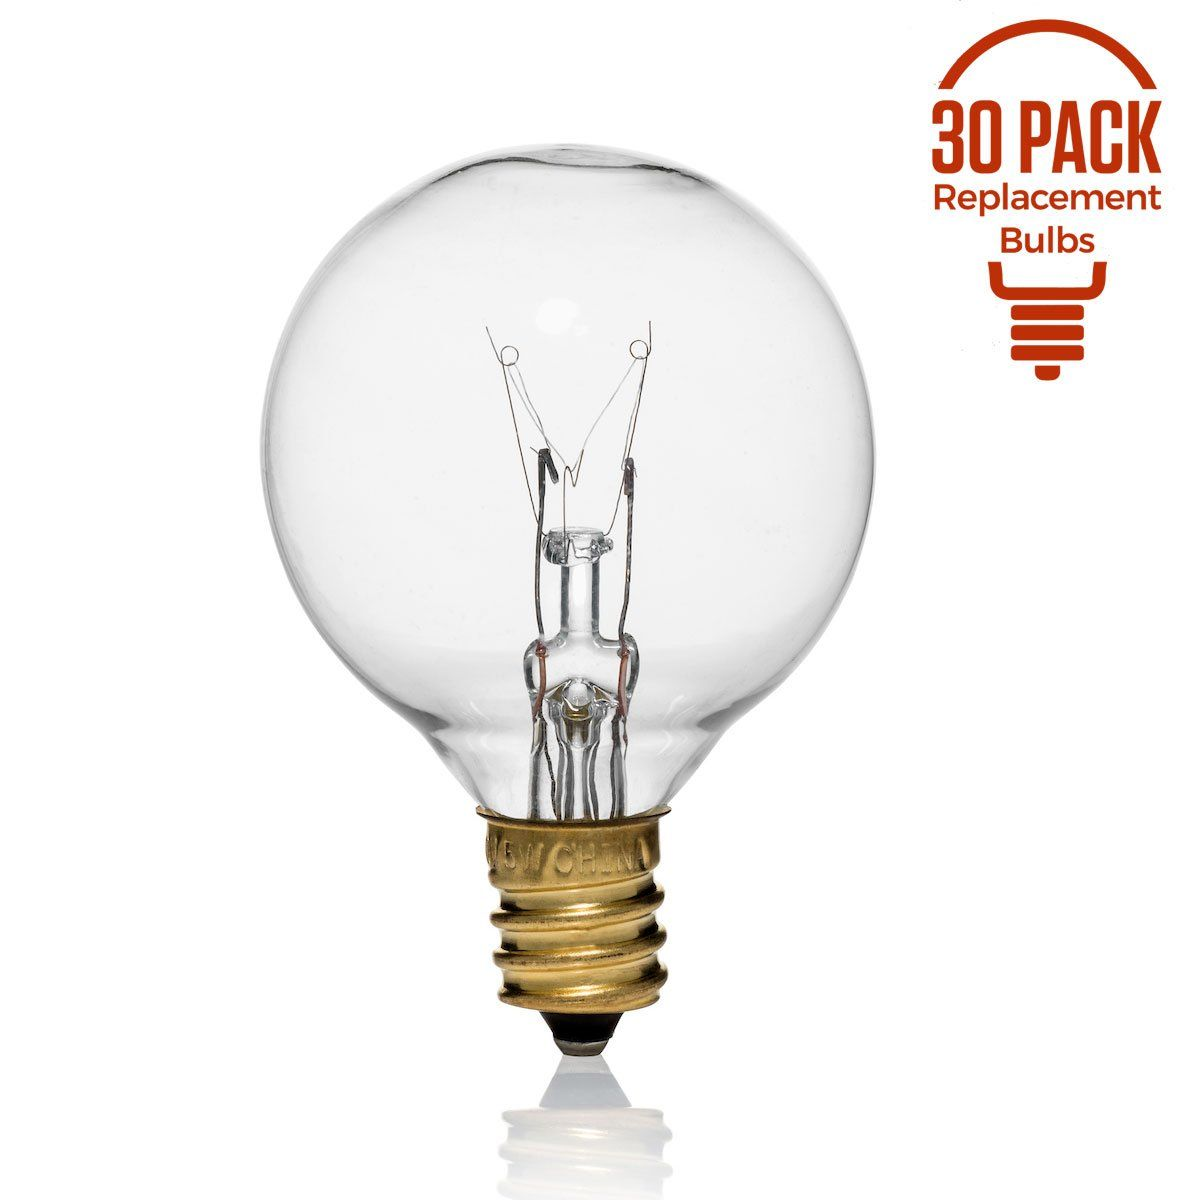 Replacement Bulbs For String Lights Enchanting 30 Pack Of G40 Replacement Bulbs 5 Watt G40 Globe Bulbs For String Decorating Design